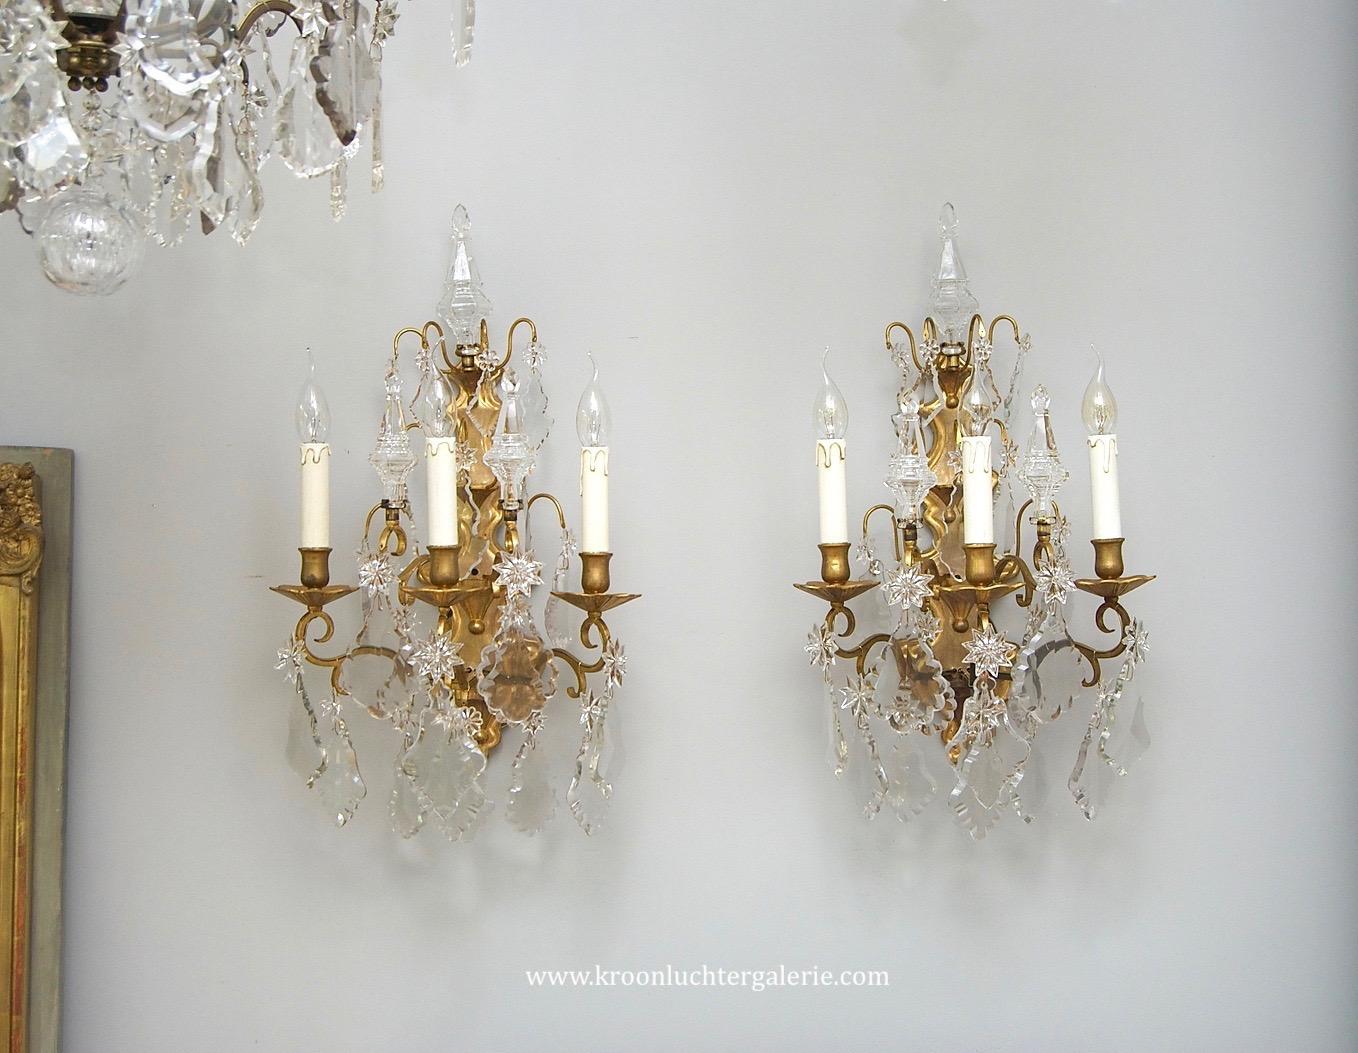 A pair of 18th century French crystal wall lights